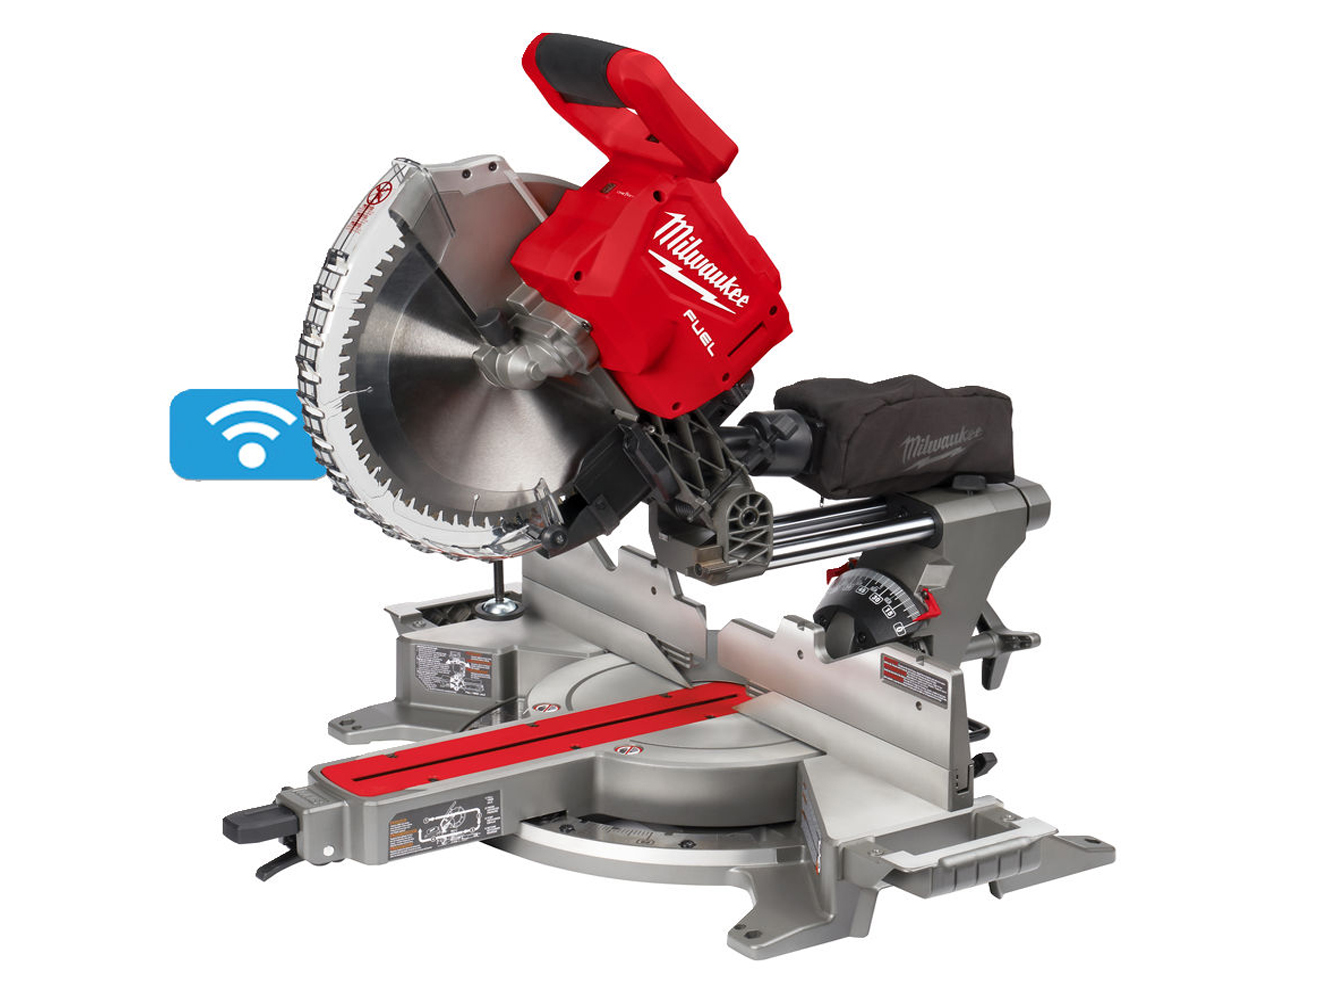 MILWAUKEE ONE-KEY 18V 305MM DOUBLE BEVEL MITRE SAW - M18FMS305 - BODY ONLY